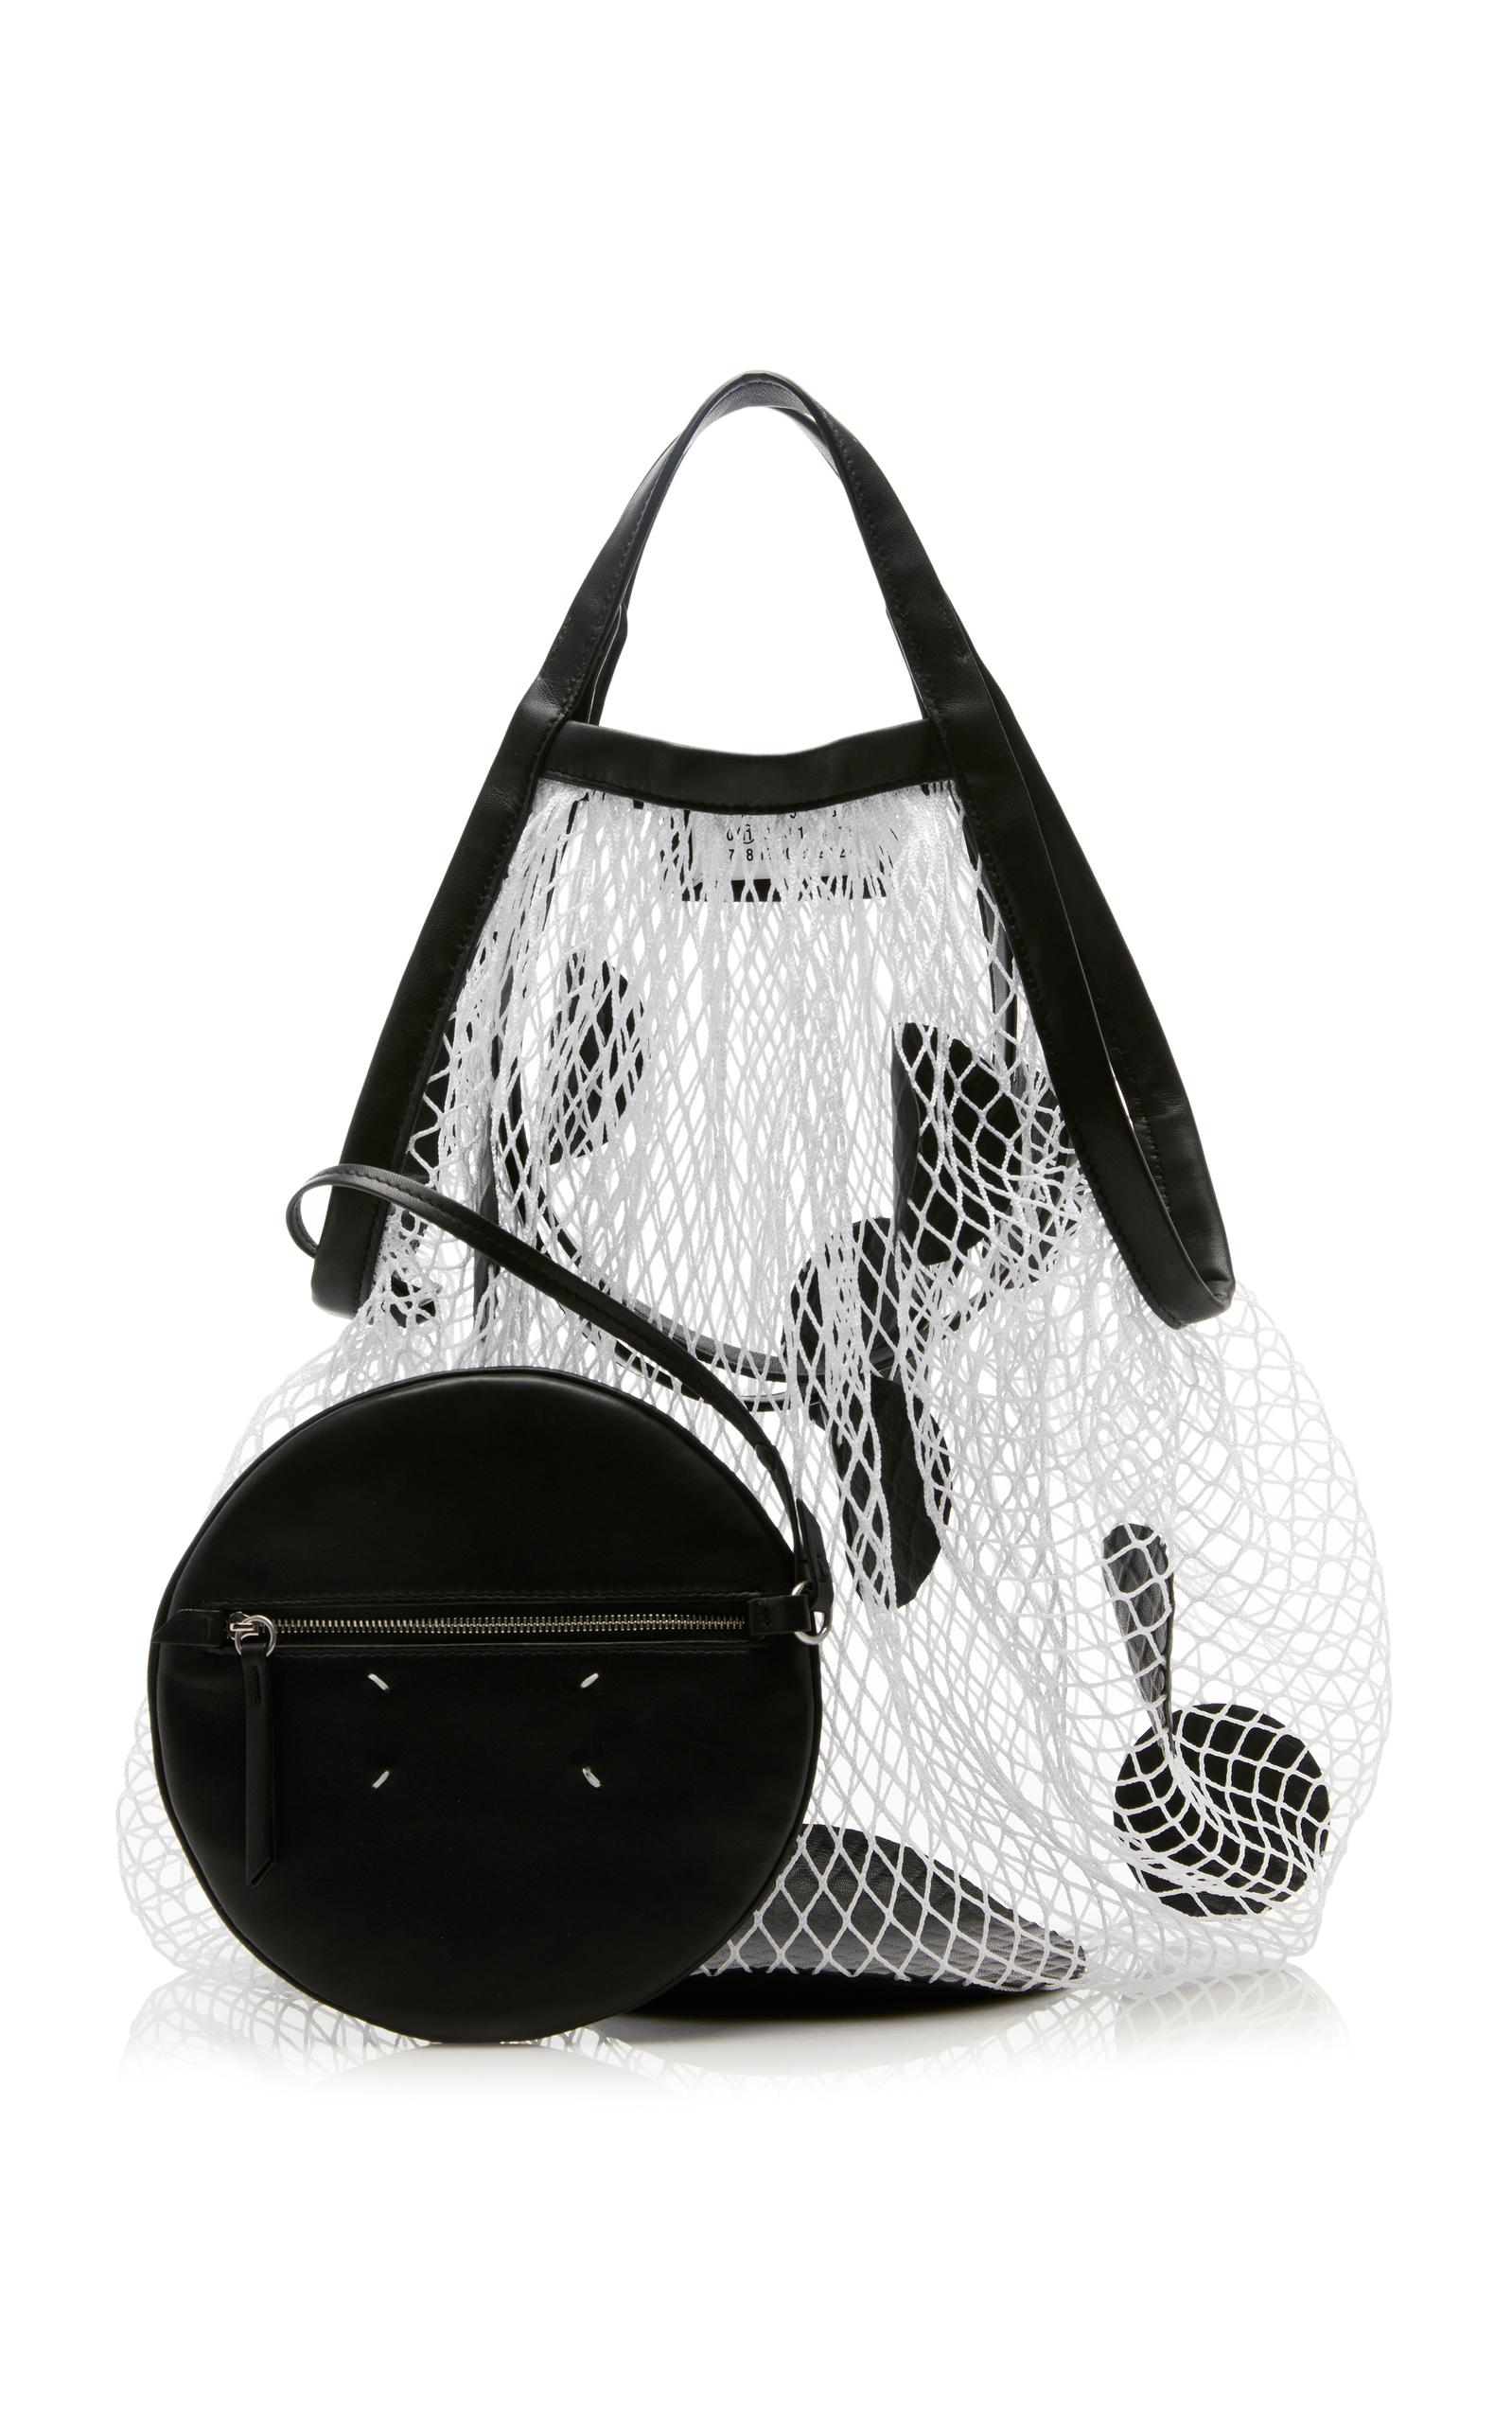 Lyst maison margiela polka dot net tote in black for Maison de margiela